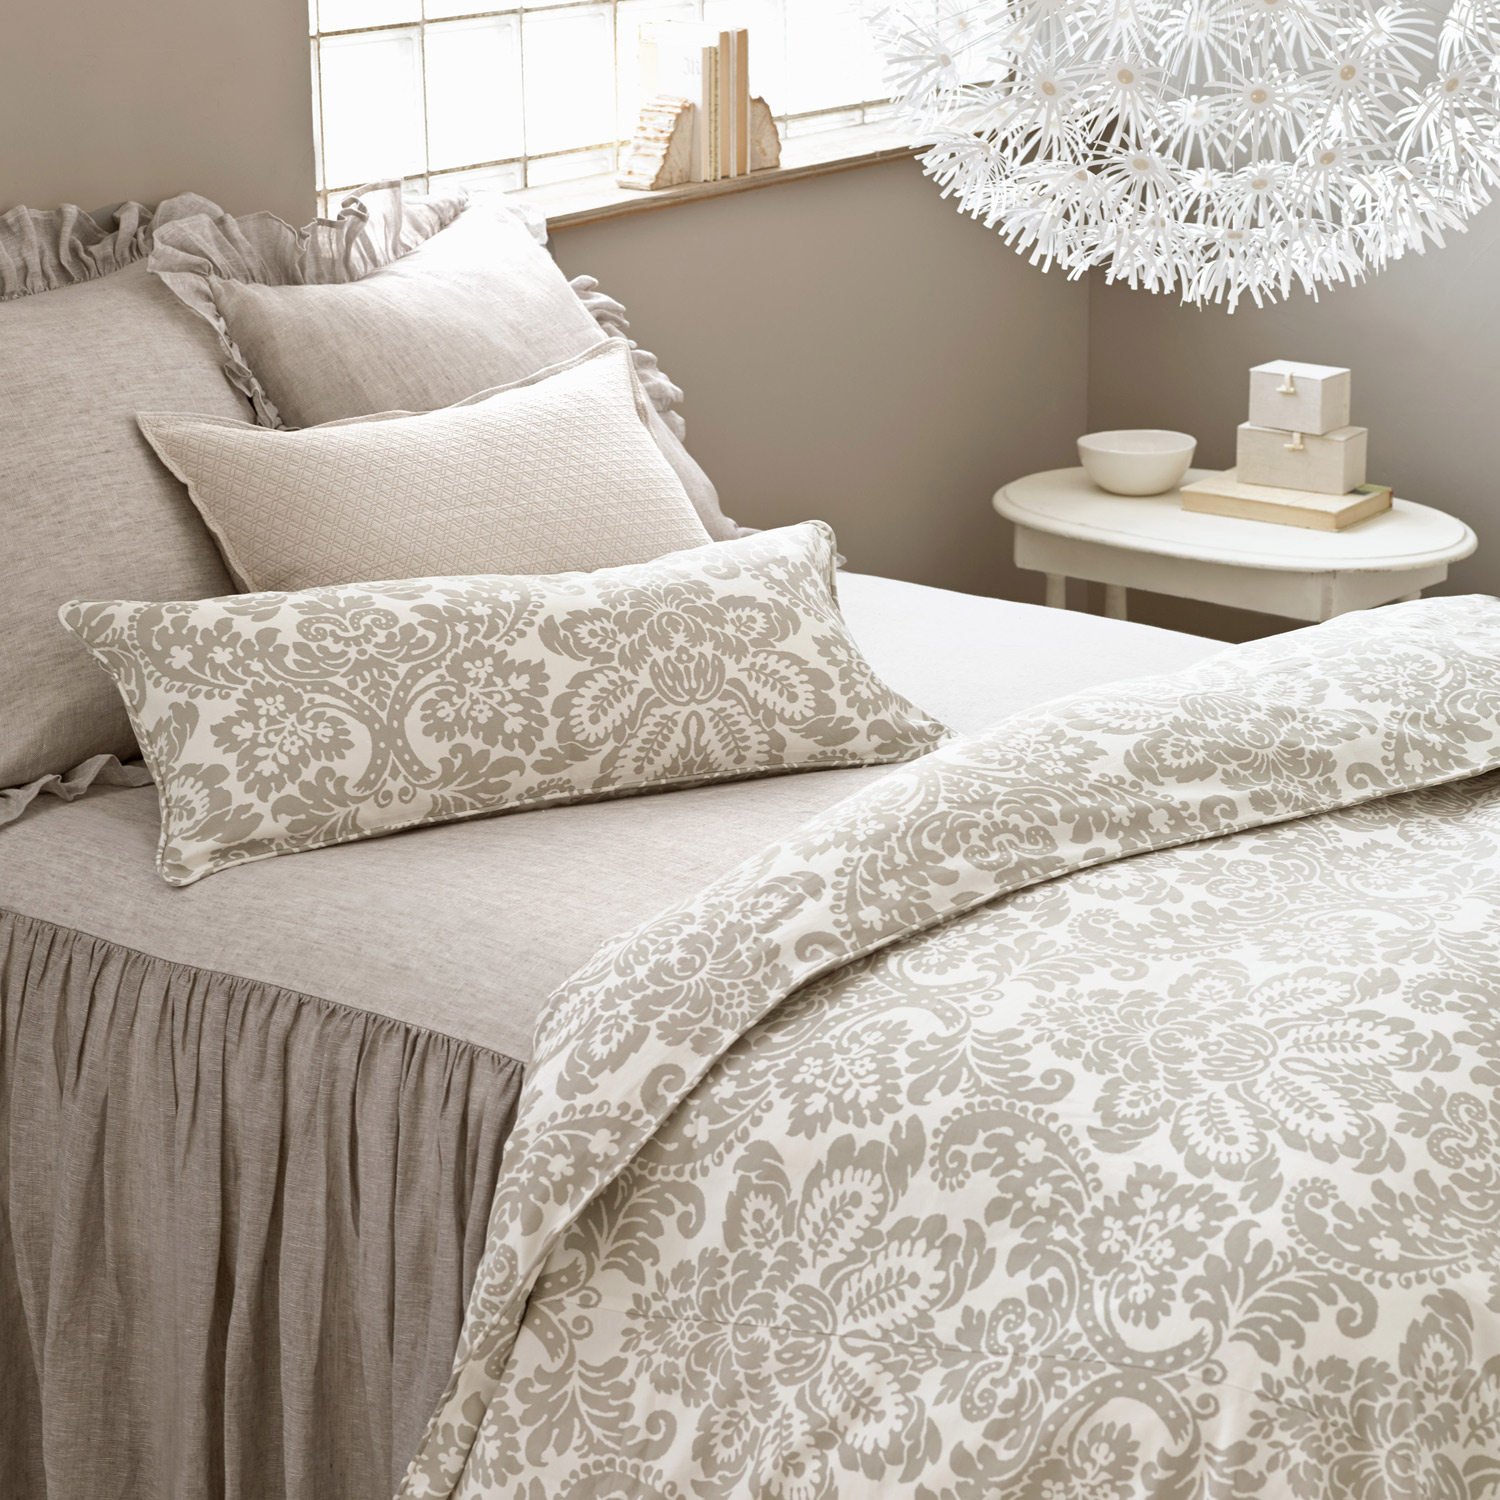 Wonderful Gray Floral Pine Cone Hill Bedding Matched With Gray Wall For Bedroom Decor Ideas